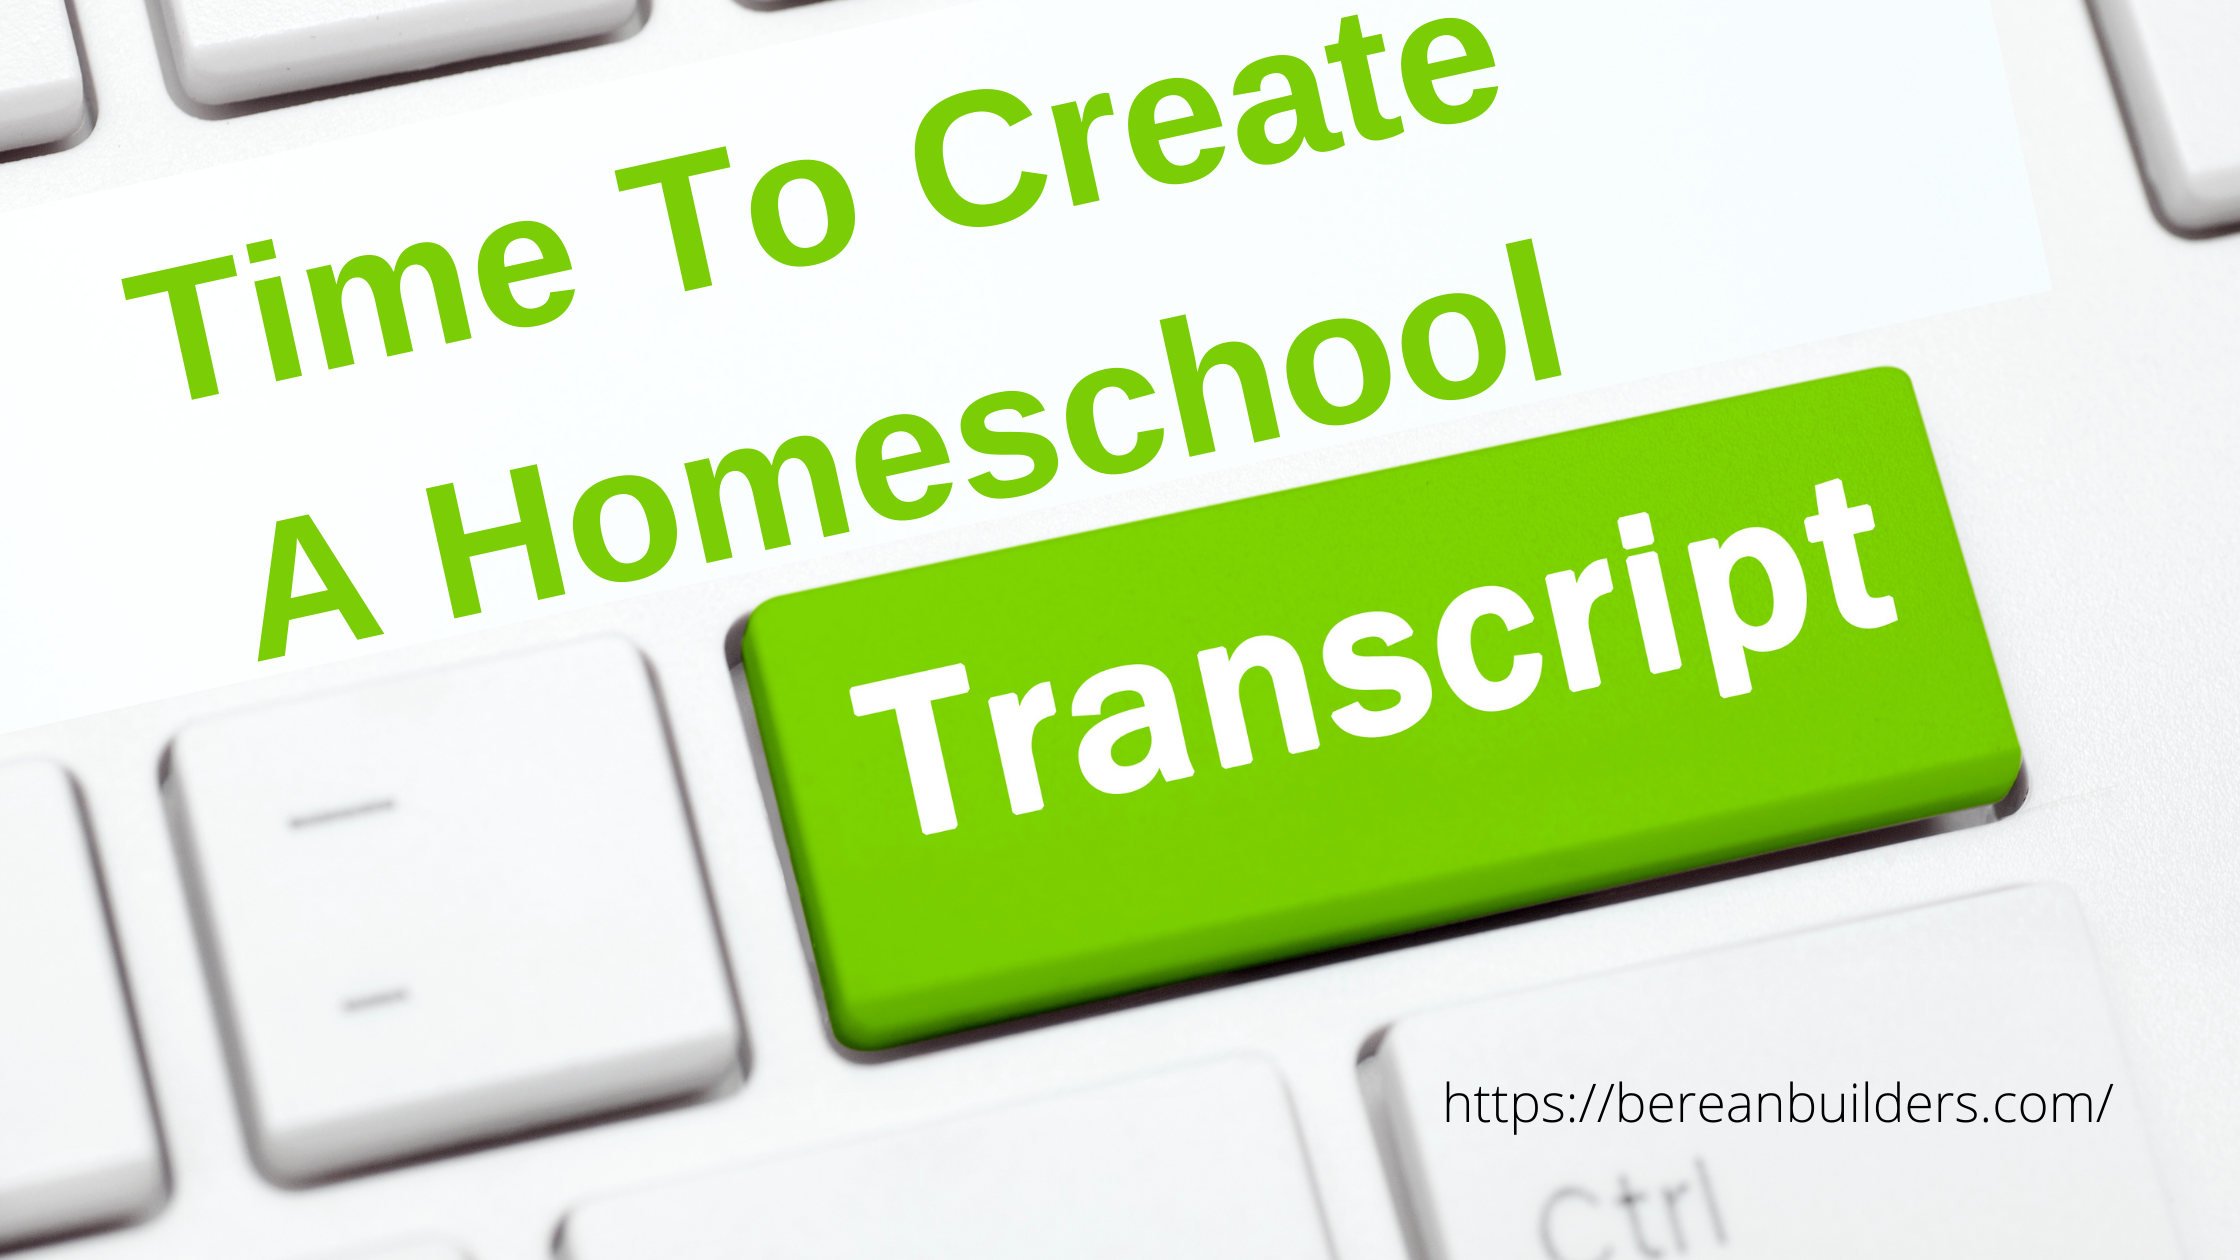 text Time to create a homeschool transcript